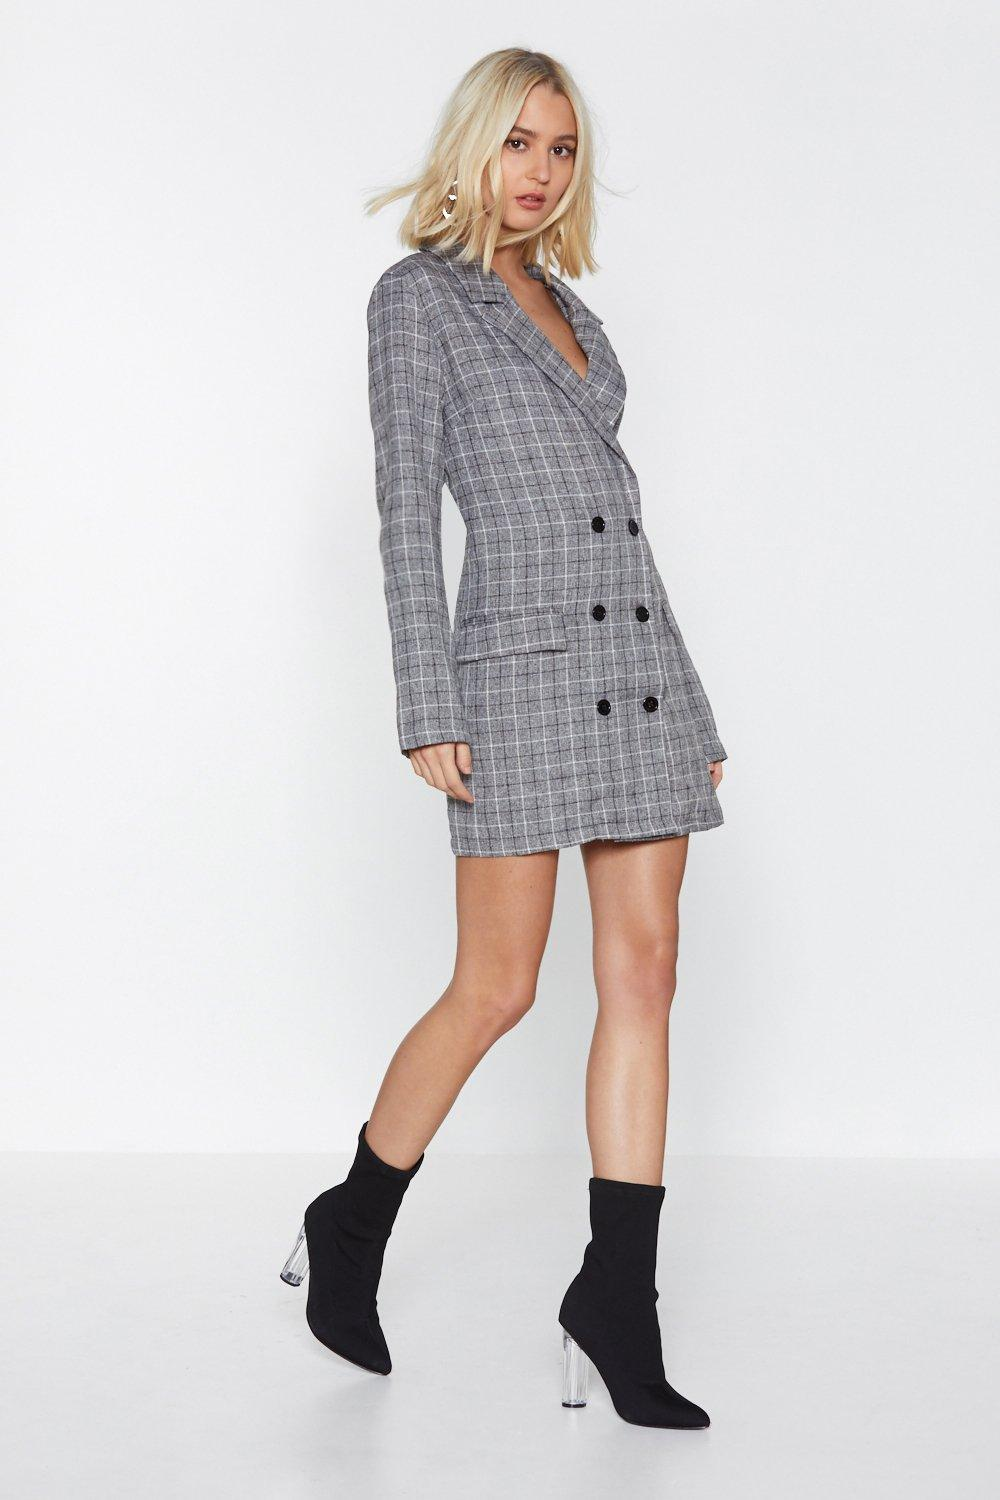 4814b51c75 Totally Checked Out Blazer Dress | Shop Clothes at Nasty Gal!